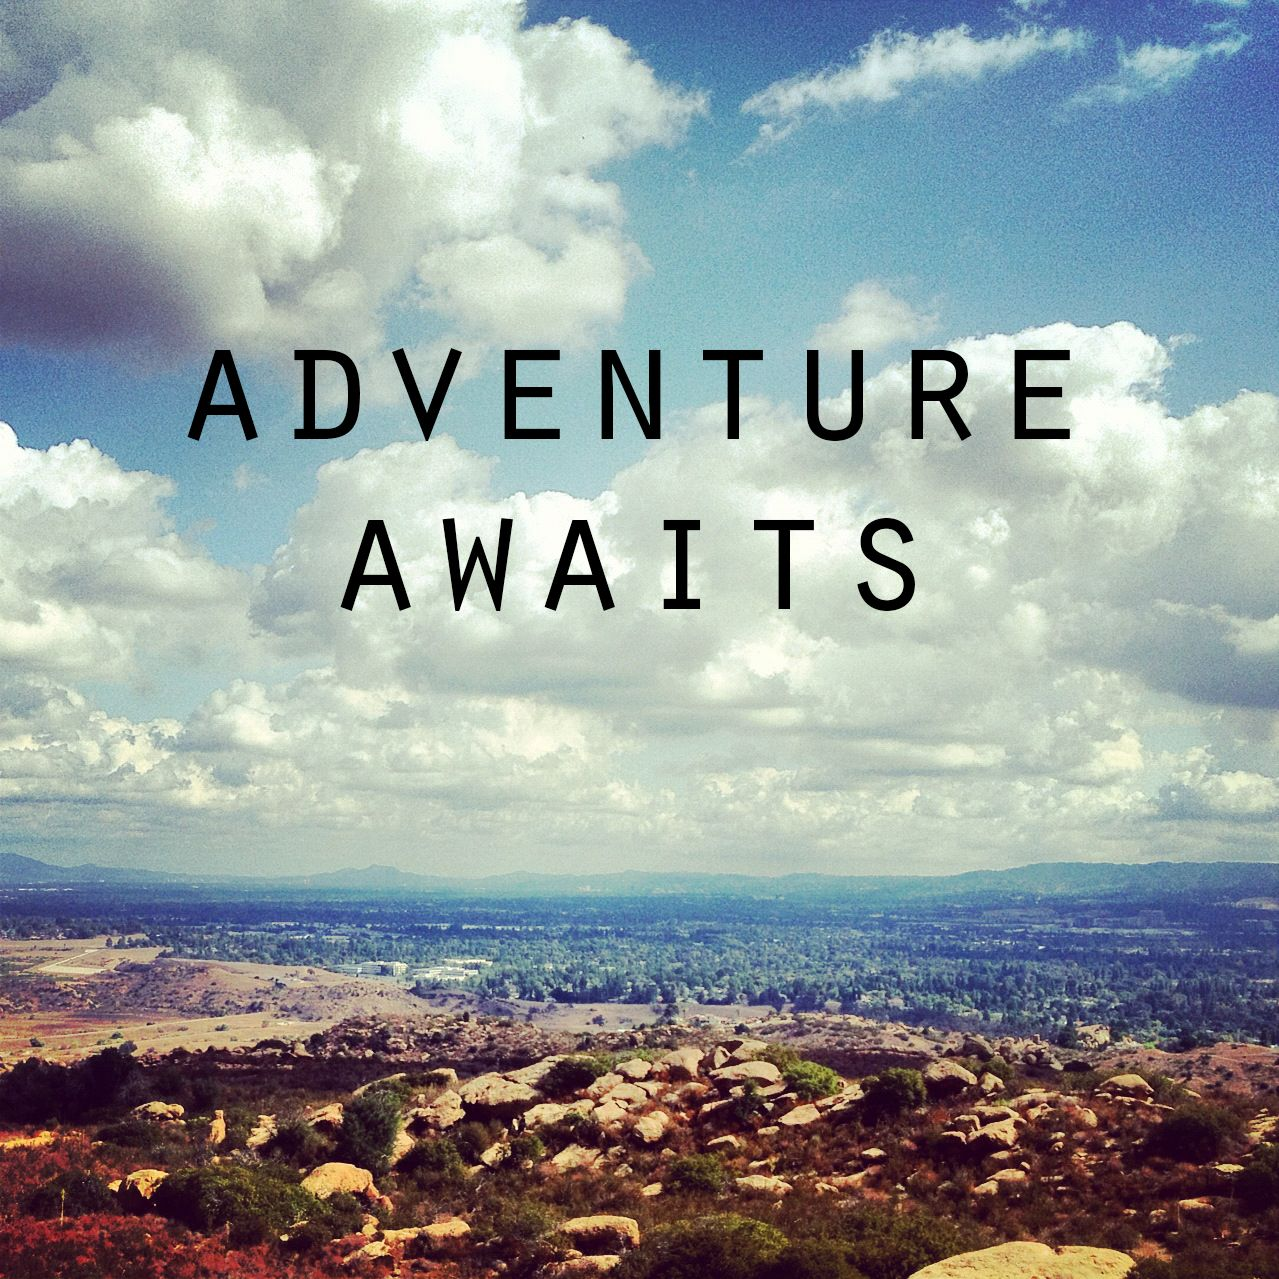 Quotes On Adventure: Adventure Quotes Pictures, Images - Page 3